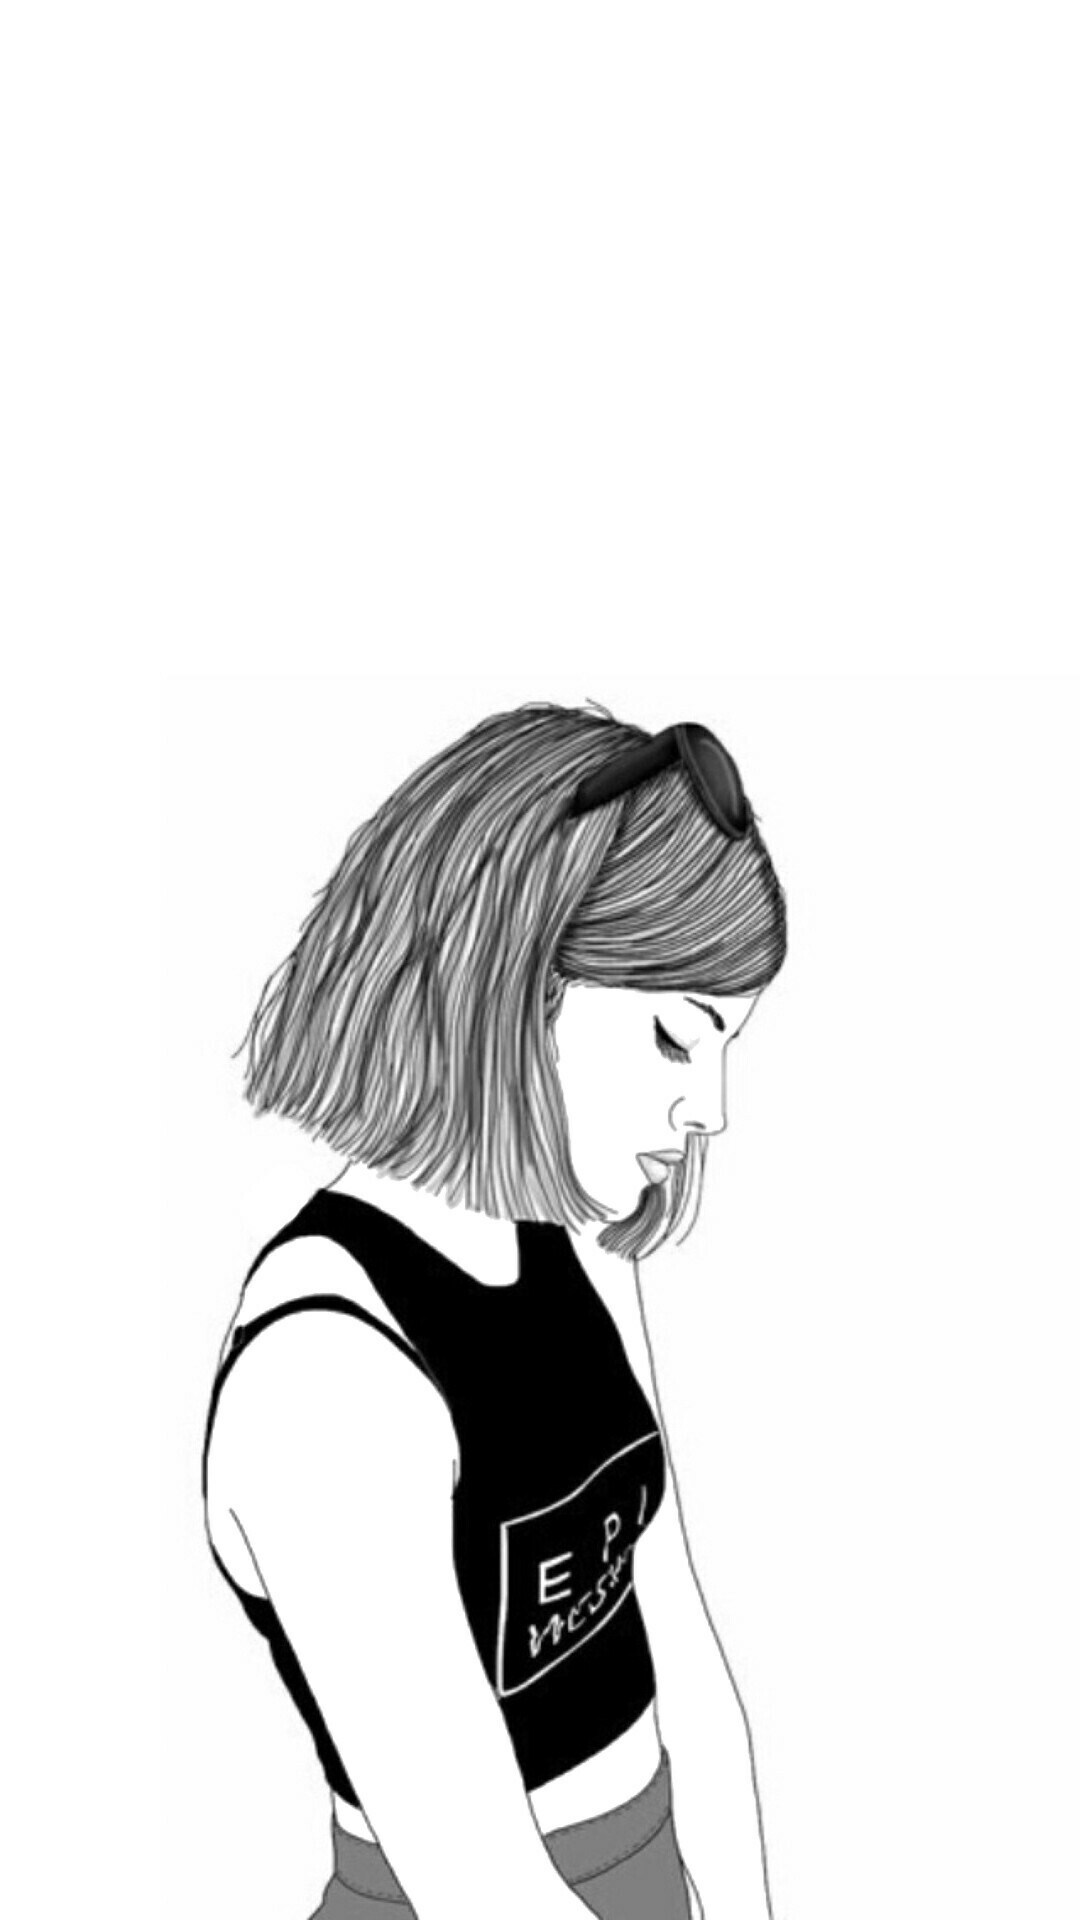 Drawings Of Girls With Short Hair : drawings, girls, short, Wallpaper, Drawing, Short, (#623468), Backgrounds, Download